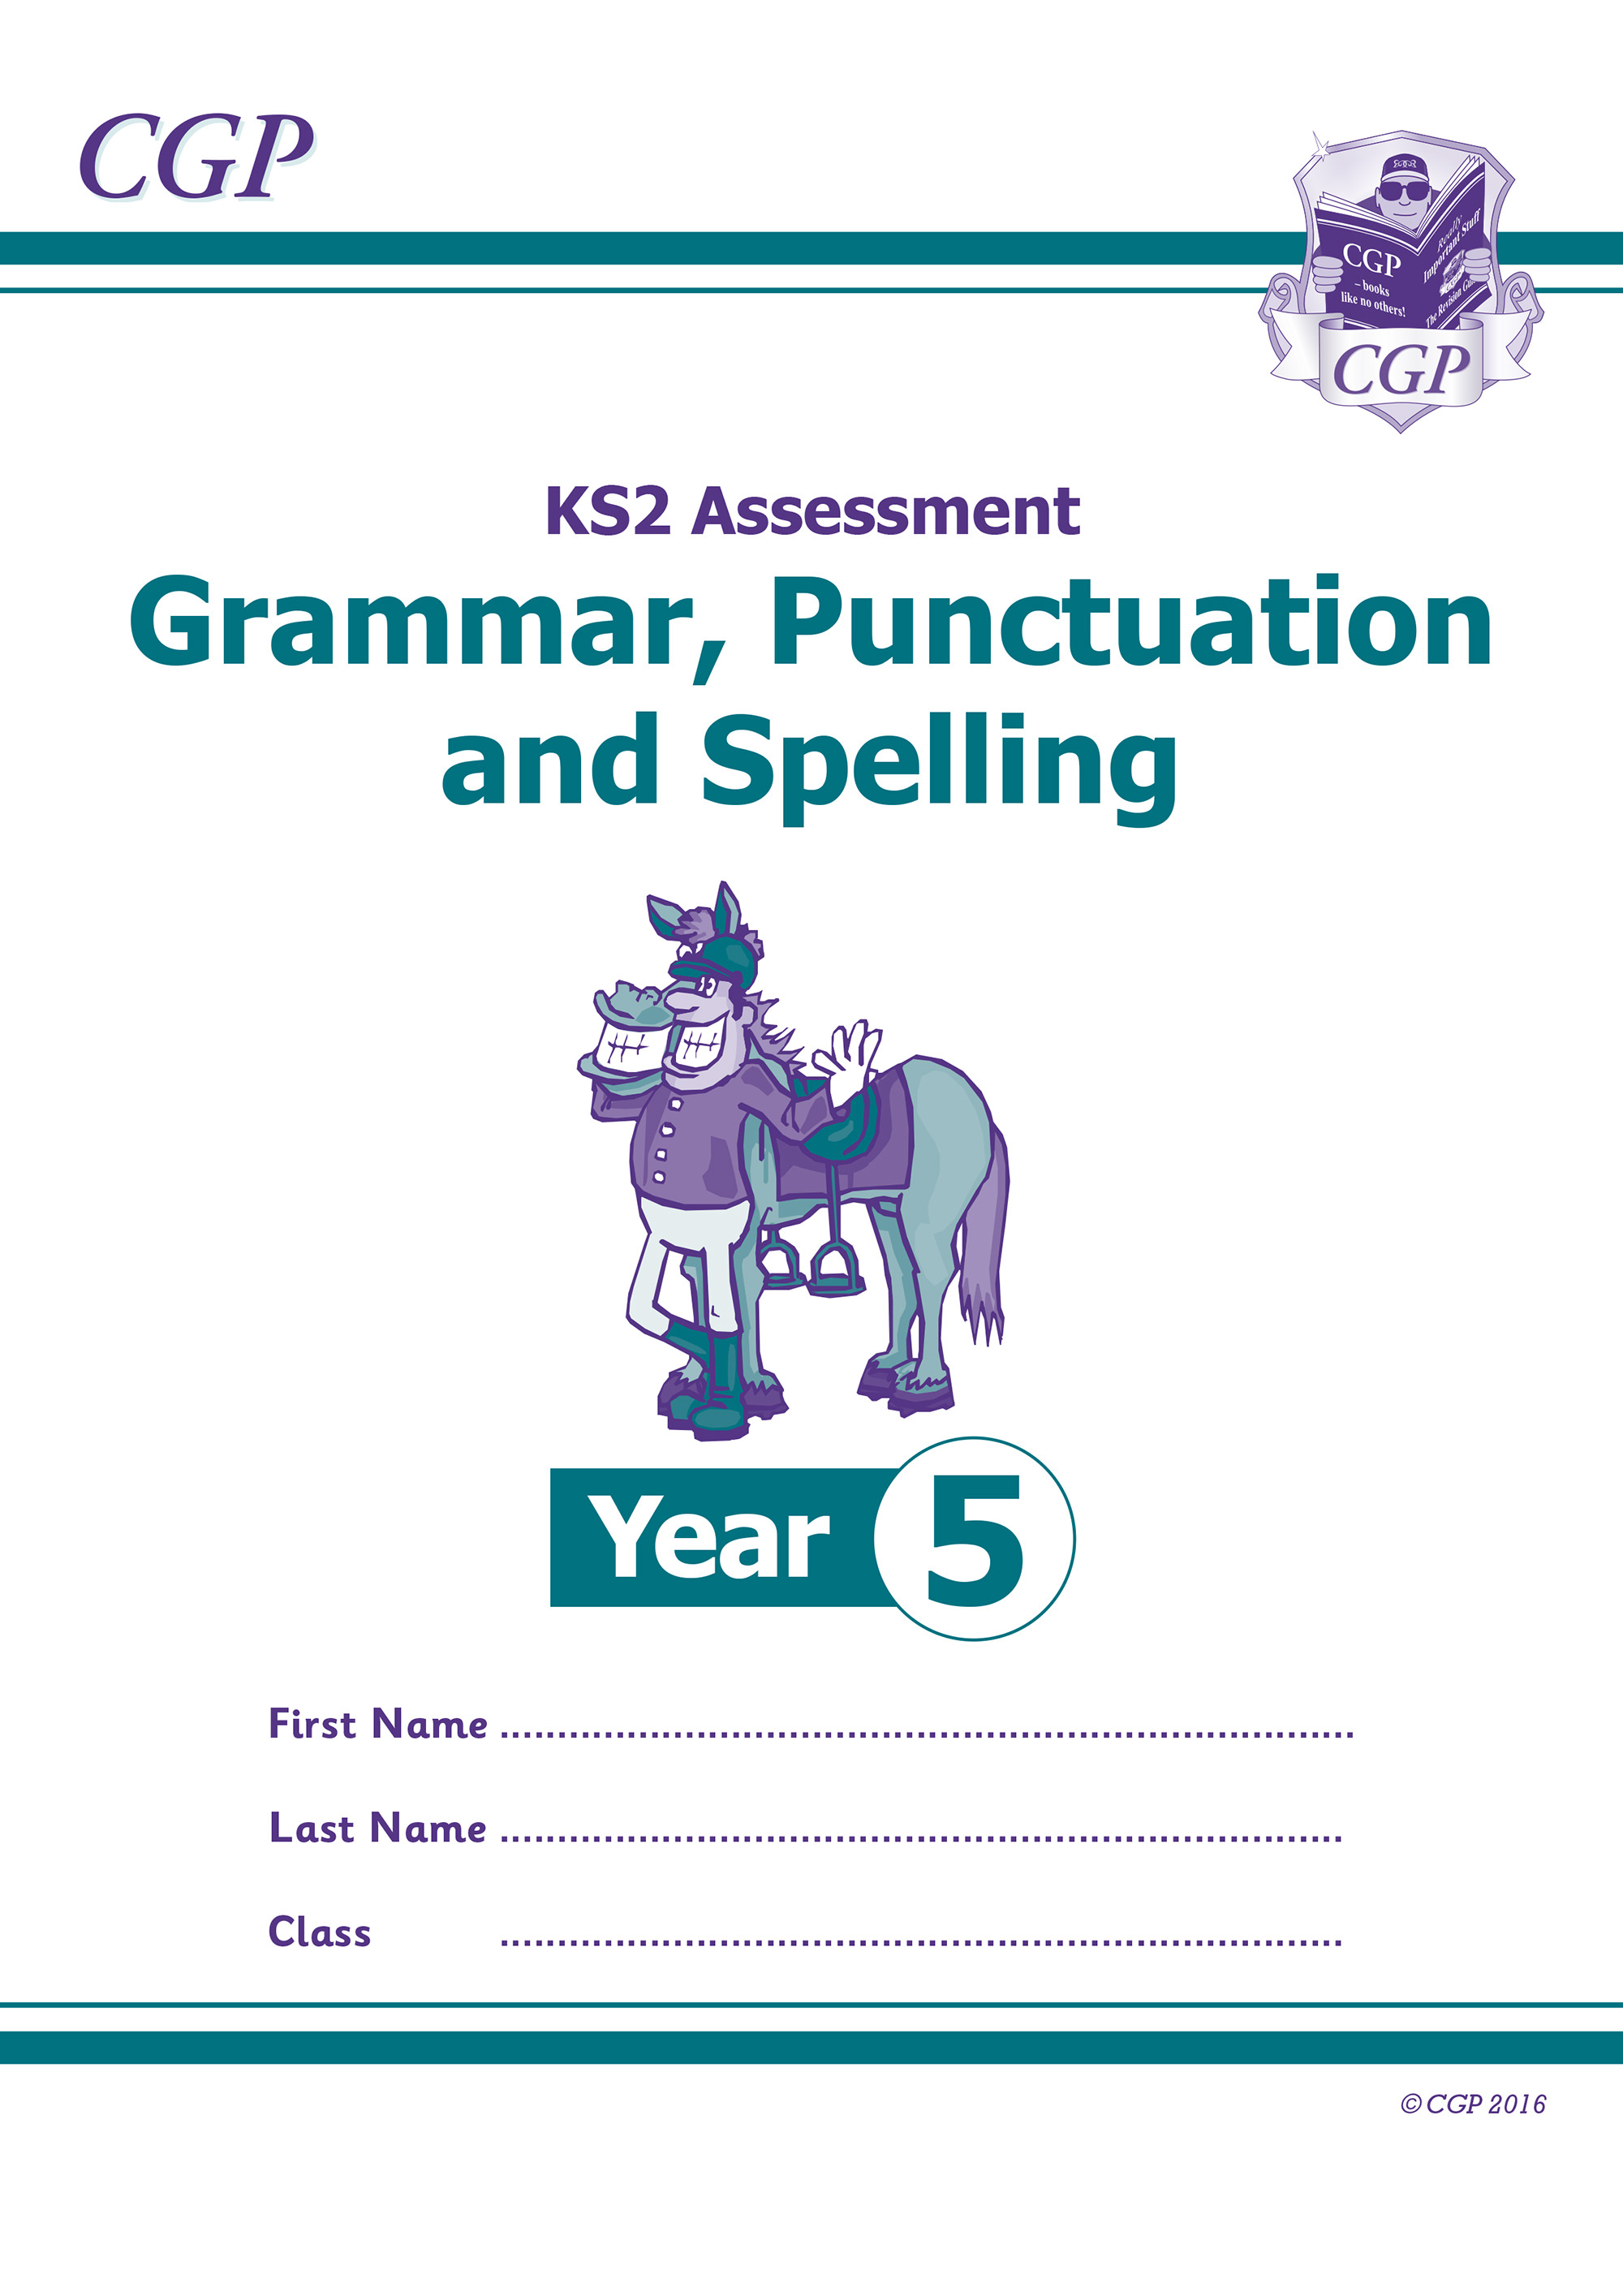 E5GP21 - KS2 Assessment: Spelling, Punctuation & Grammar - Year 5 Test